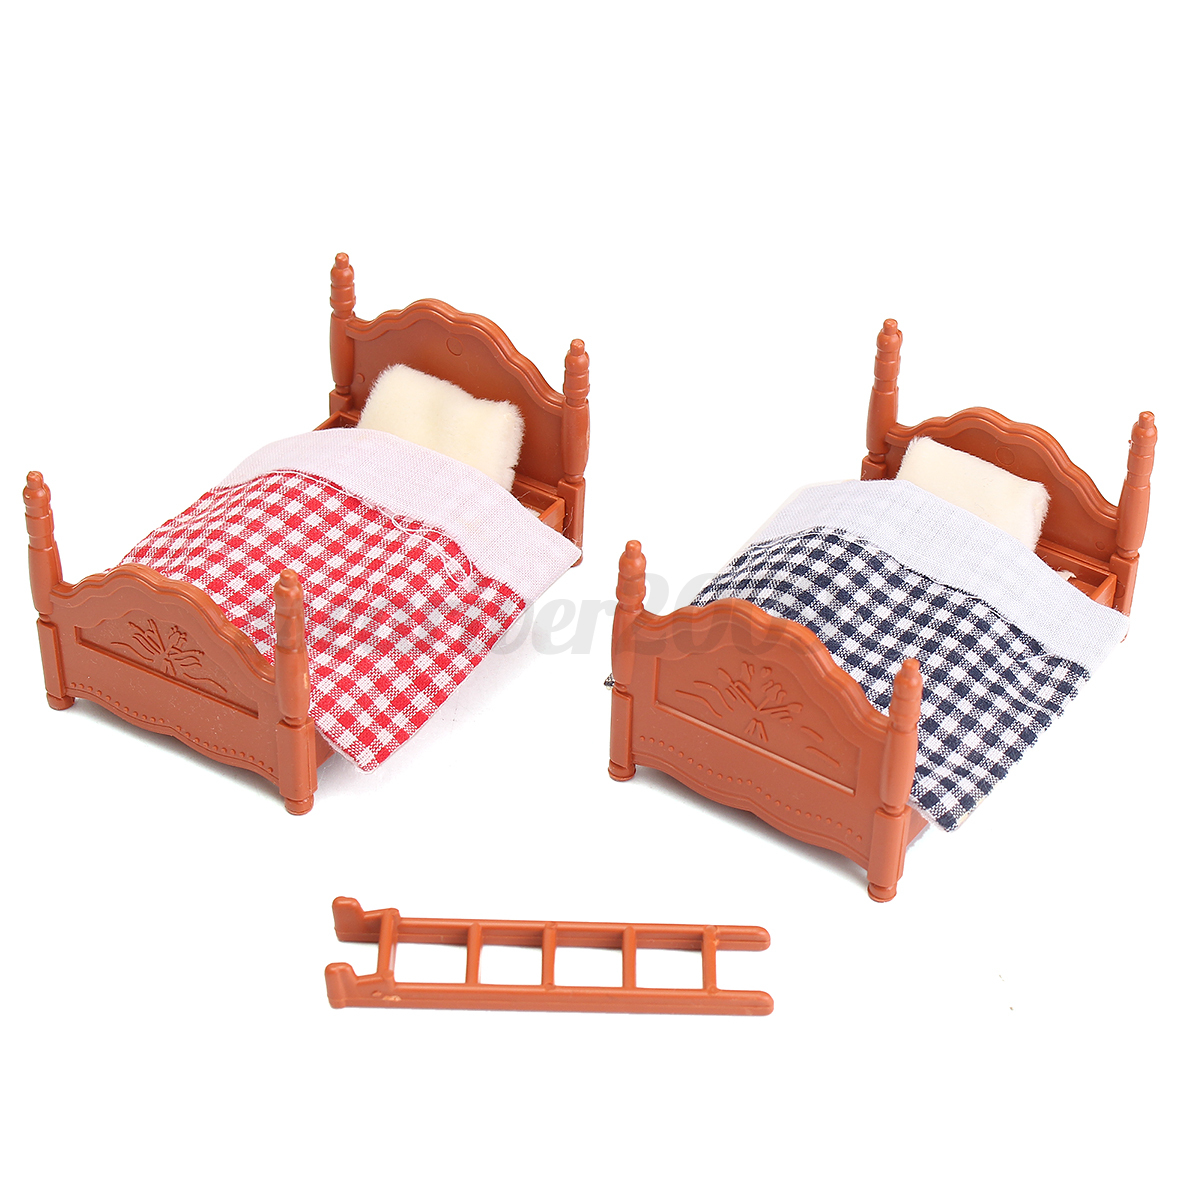 1 12 scale dollhouse miniature furniture plastic bunk bed bedroom acessories ebay Plastic bedroom furniture